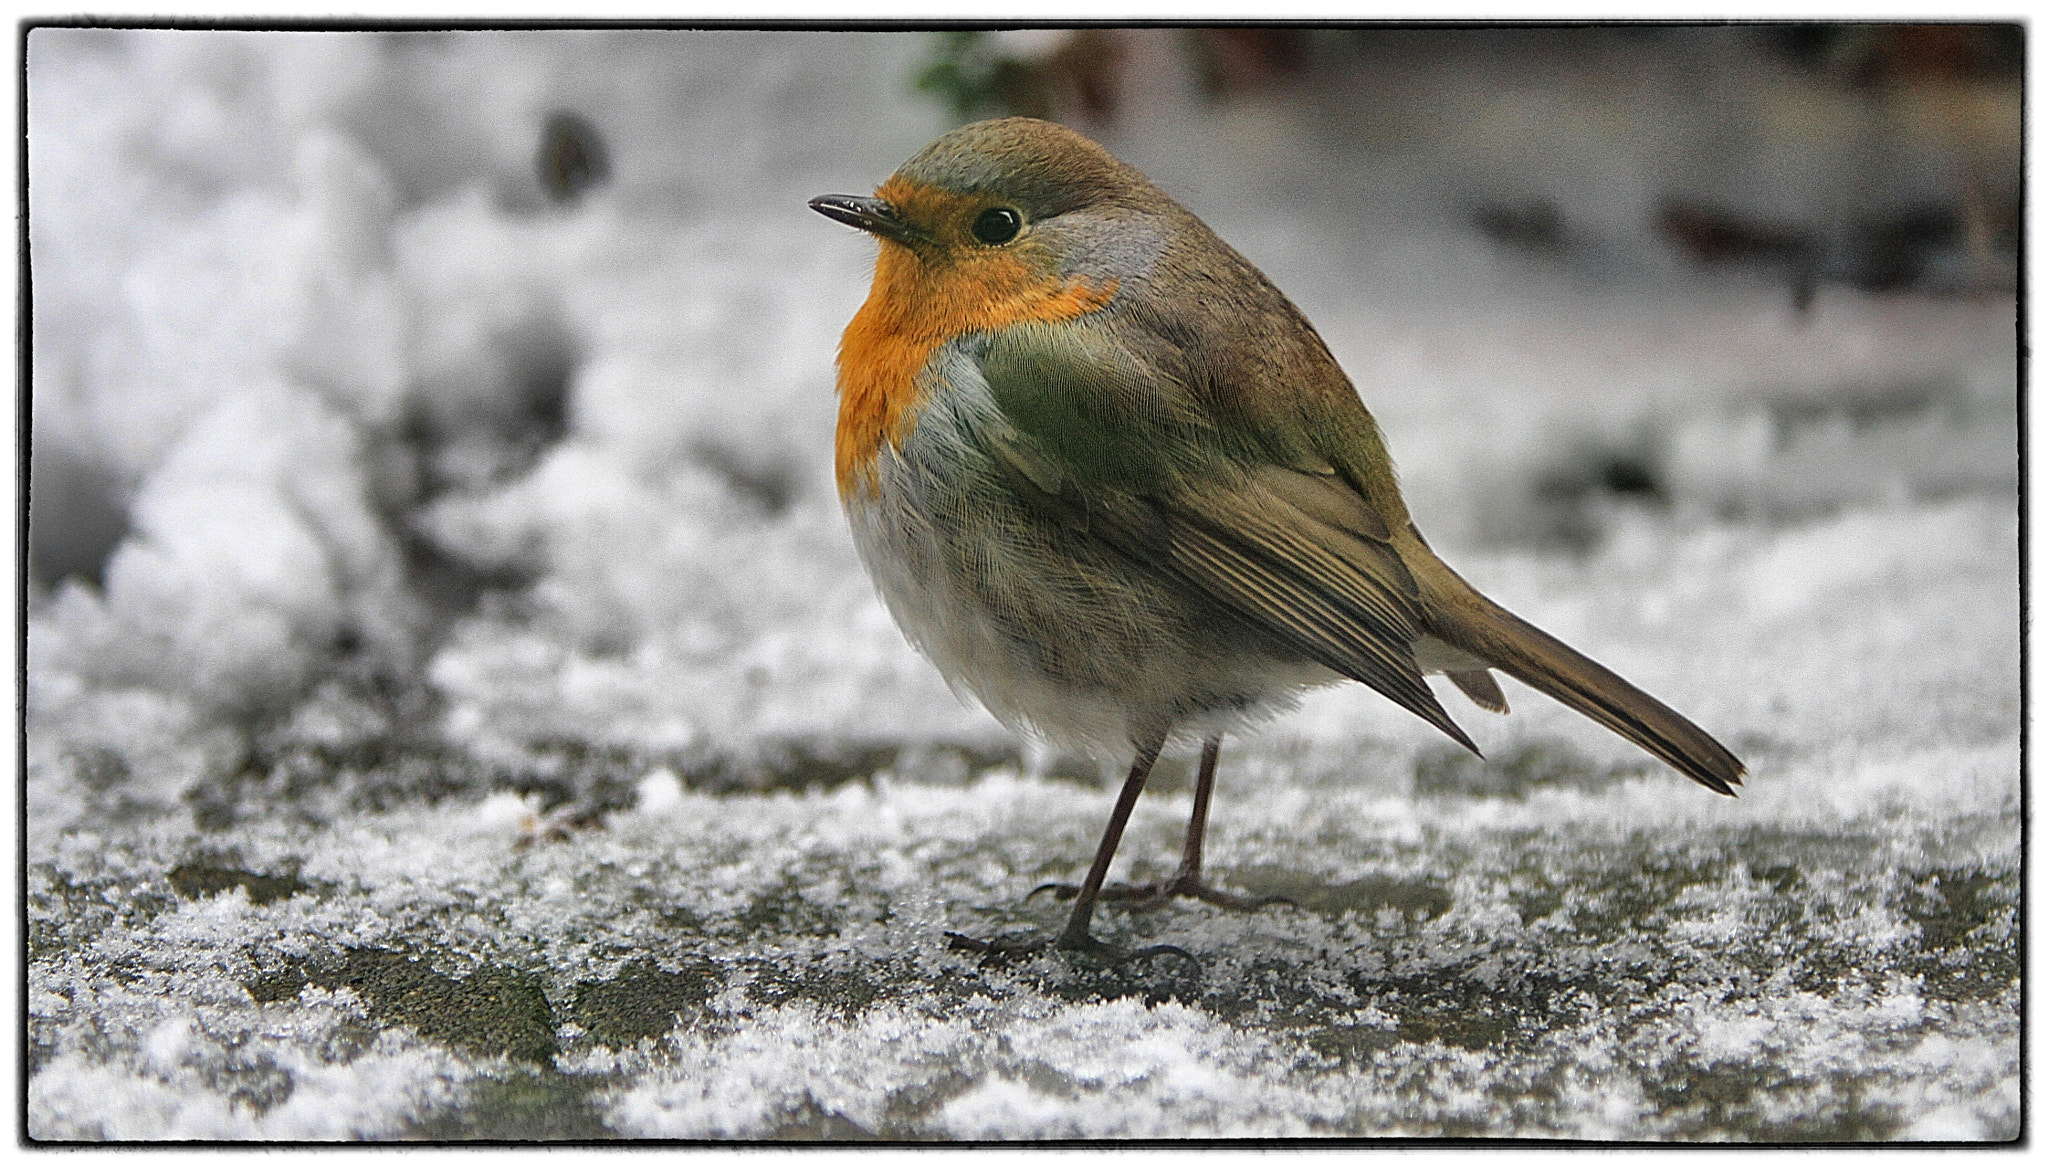 Photograph Robin in the snow by Koen Domus on 500px